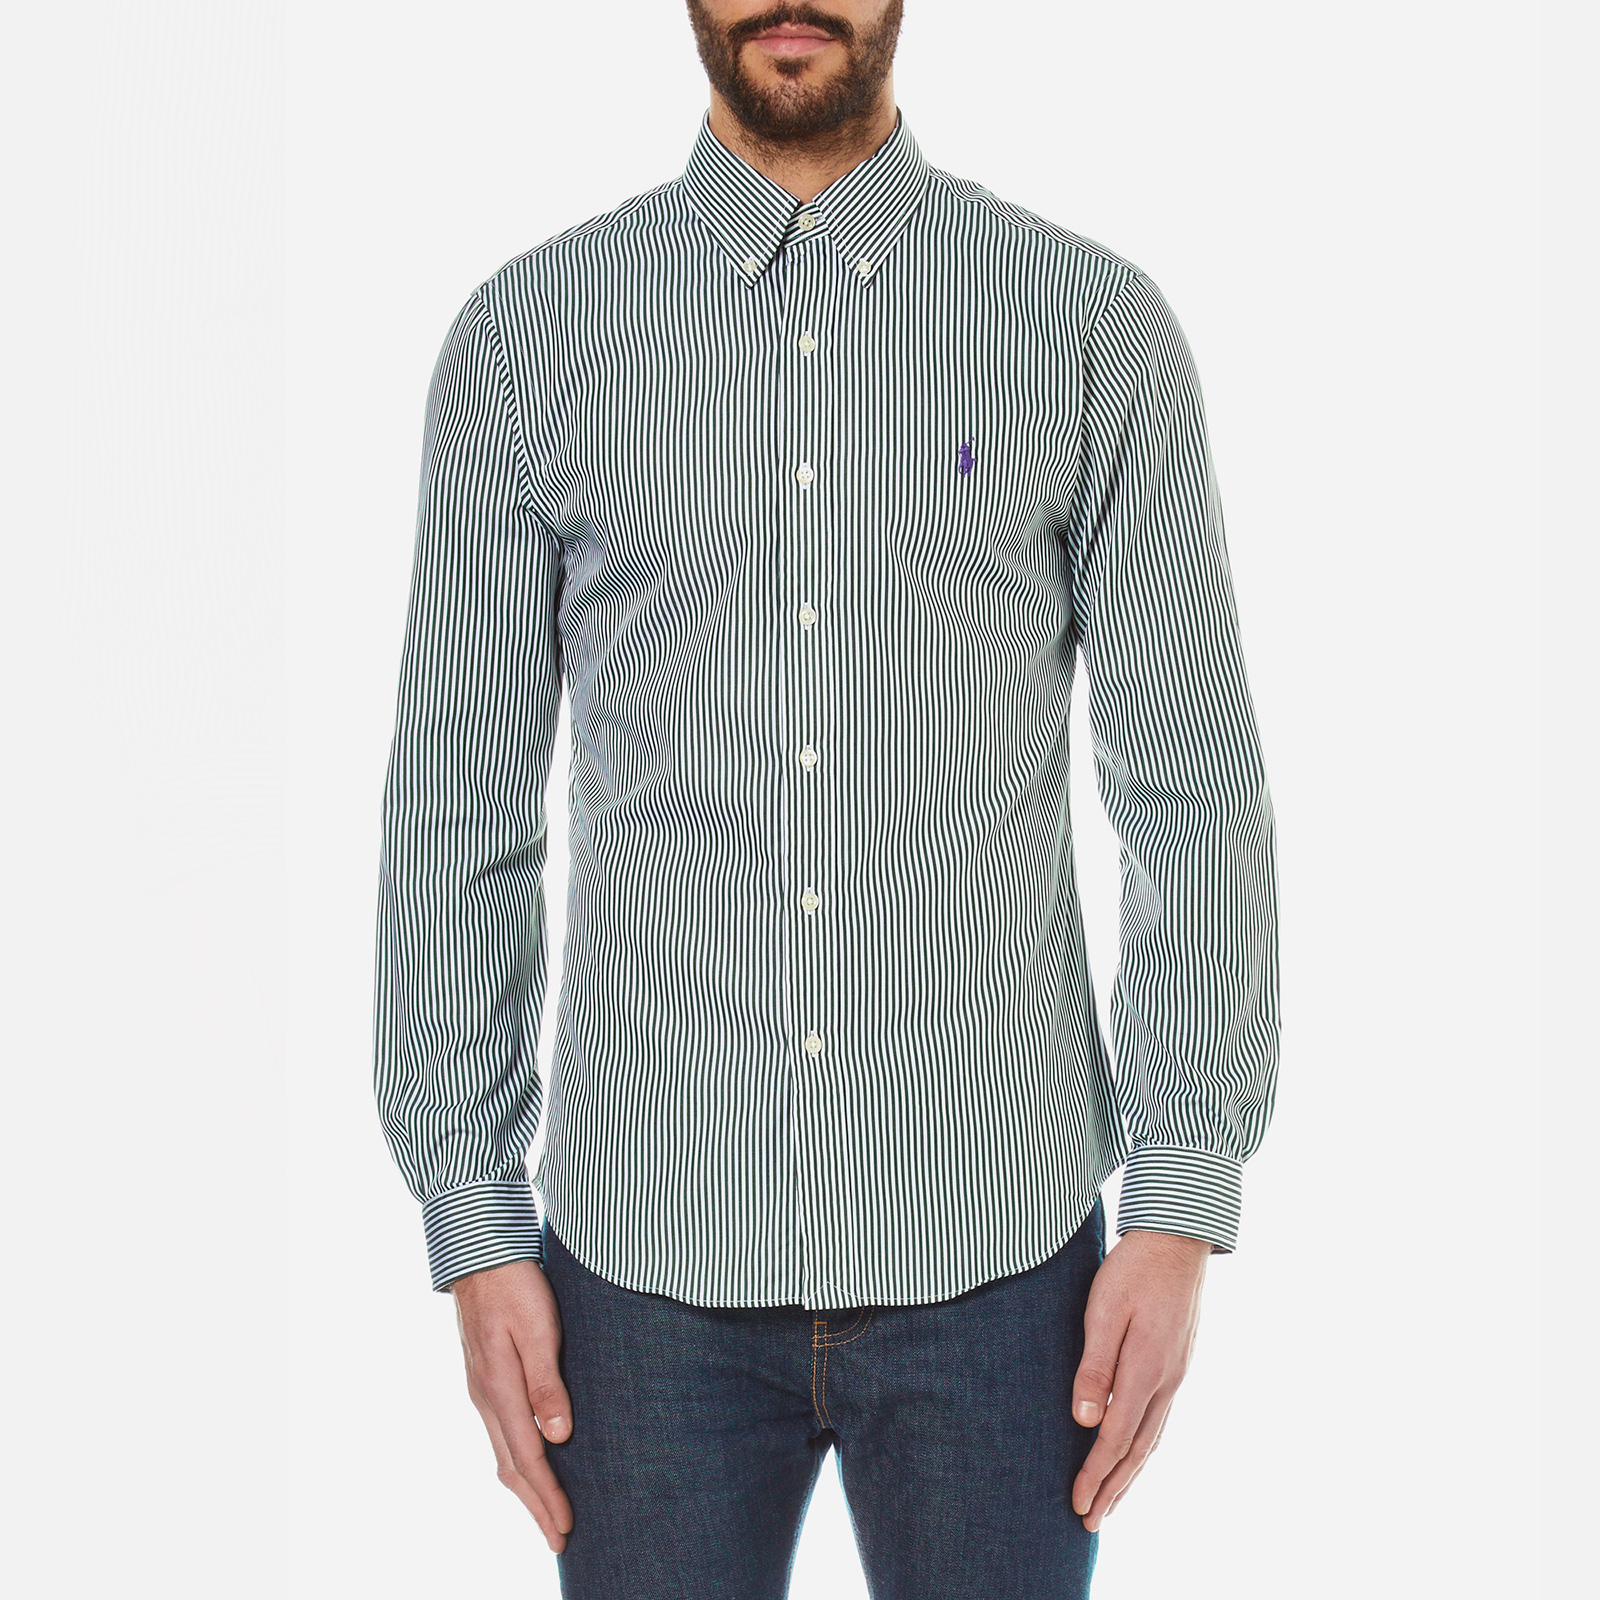 4e3abdc4f2 Polo Ralph Lauren Men's Long Sleeved Striped Shirt - Pine Green - Free UK  Delivery over £50